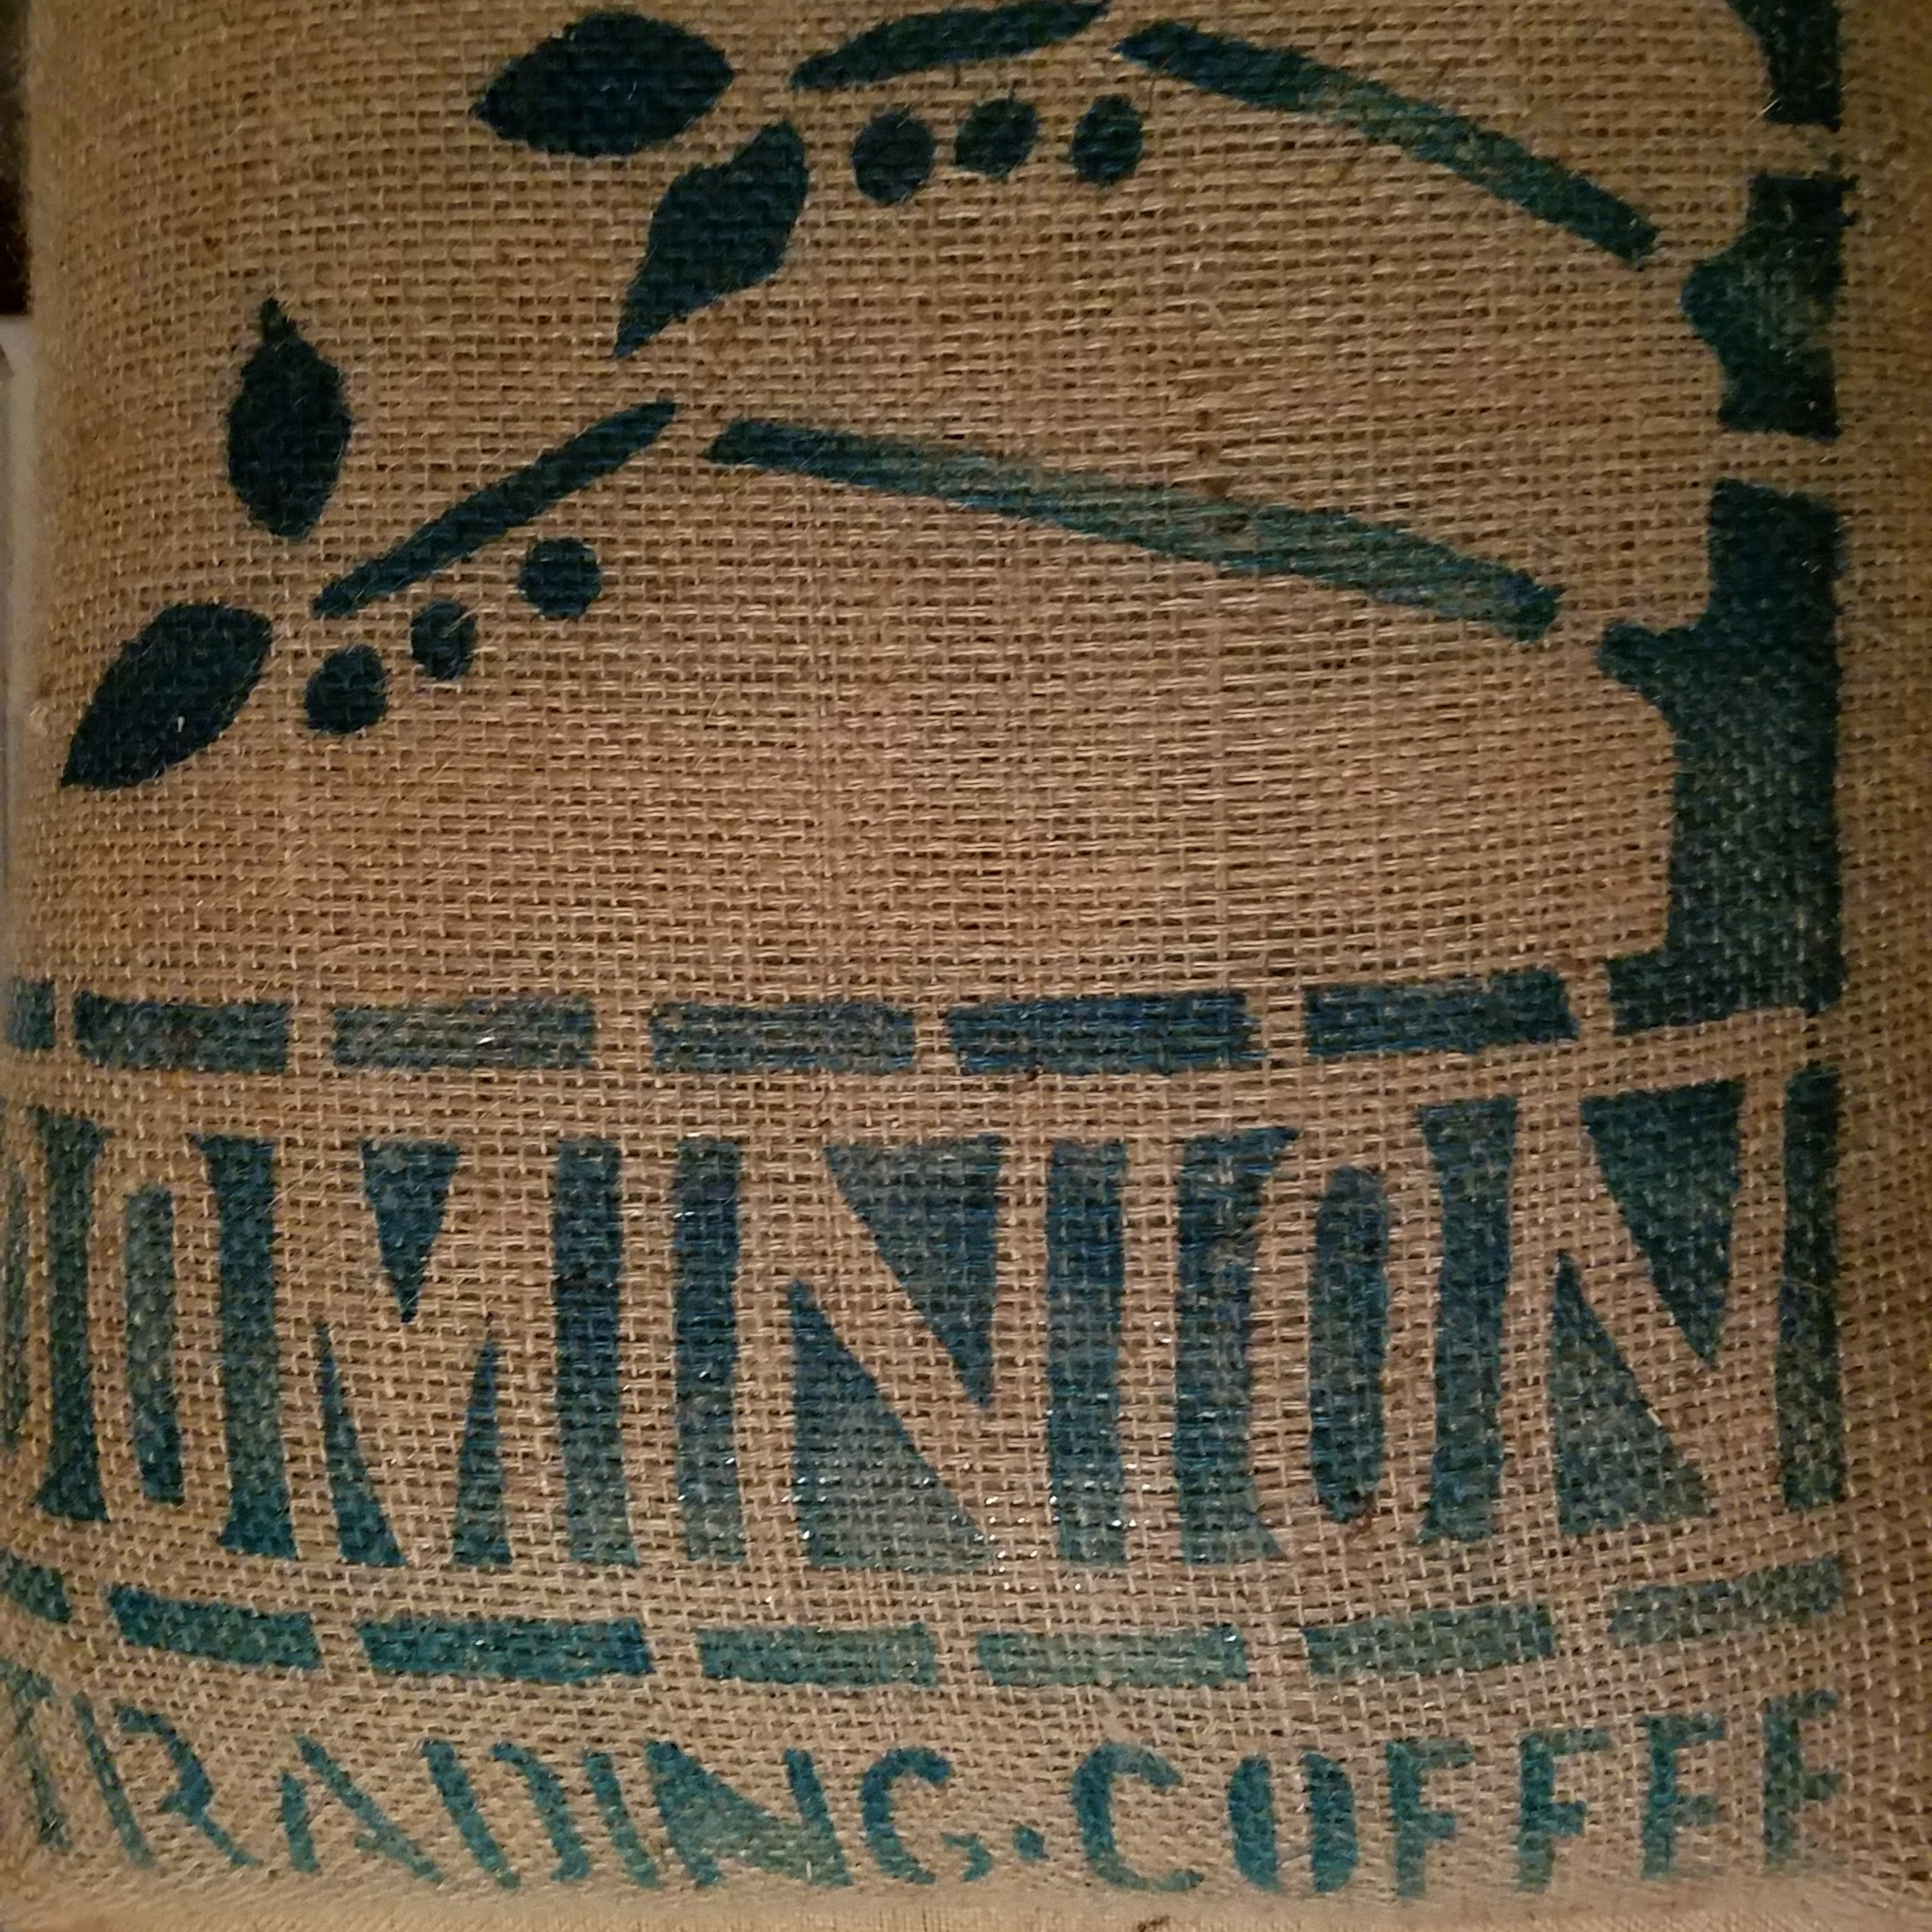 Burlap bag from Dominion Trading, LLC